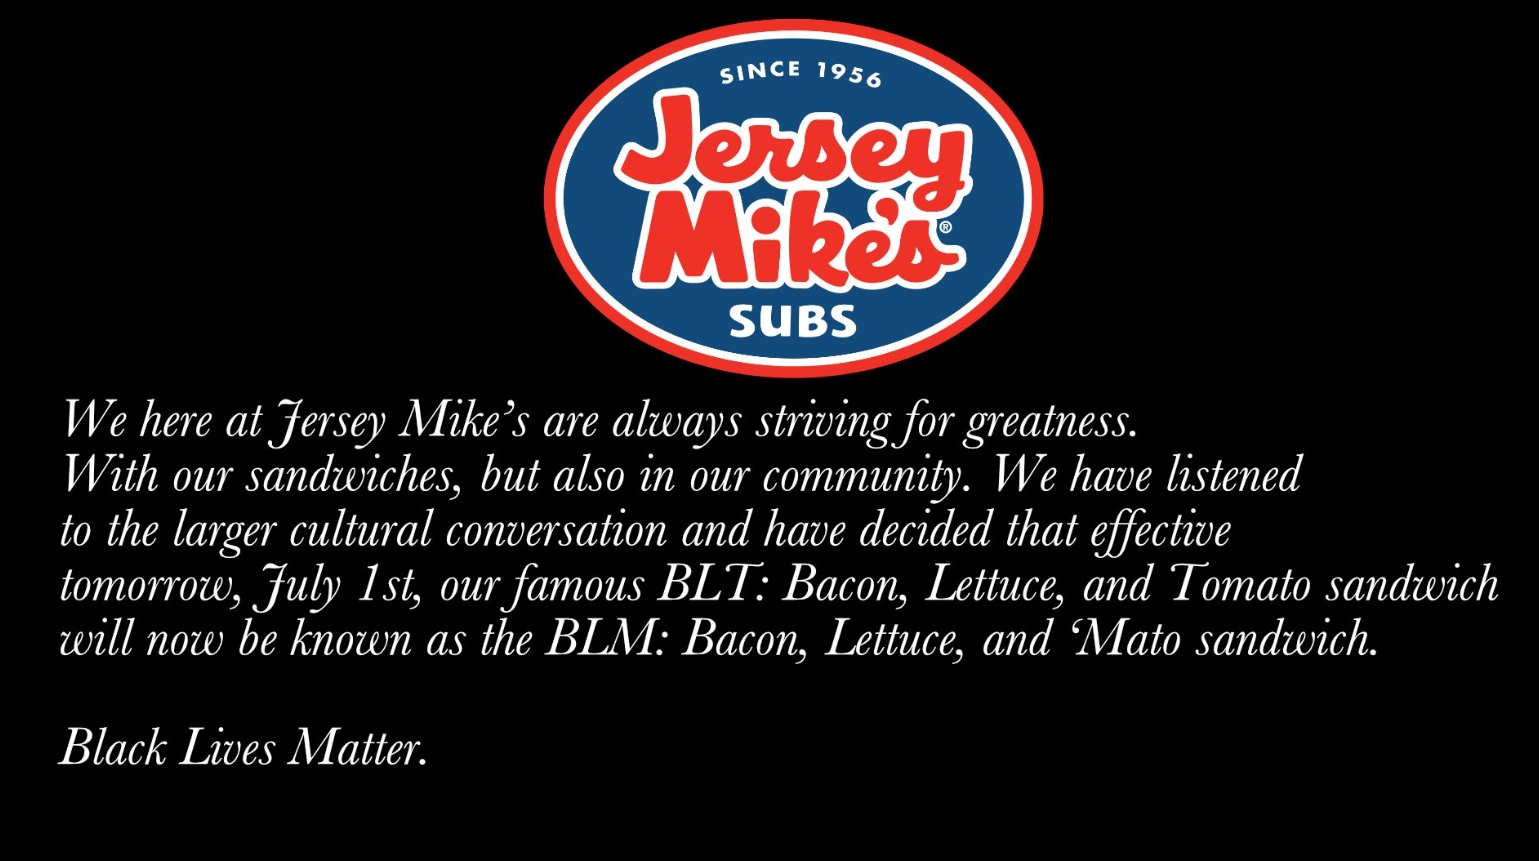 PHOTO Jersey Mikes Changing BLT Sandwich Name To Black Lives Matter